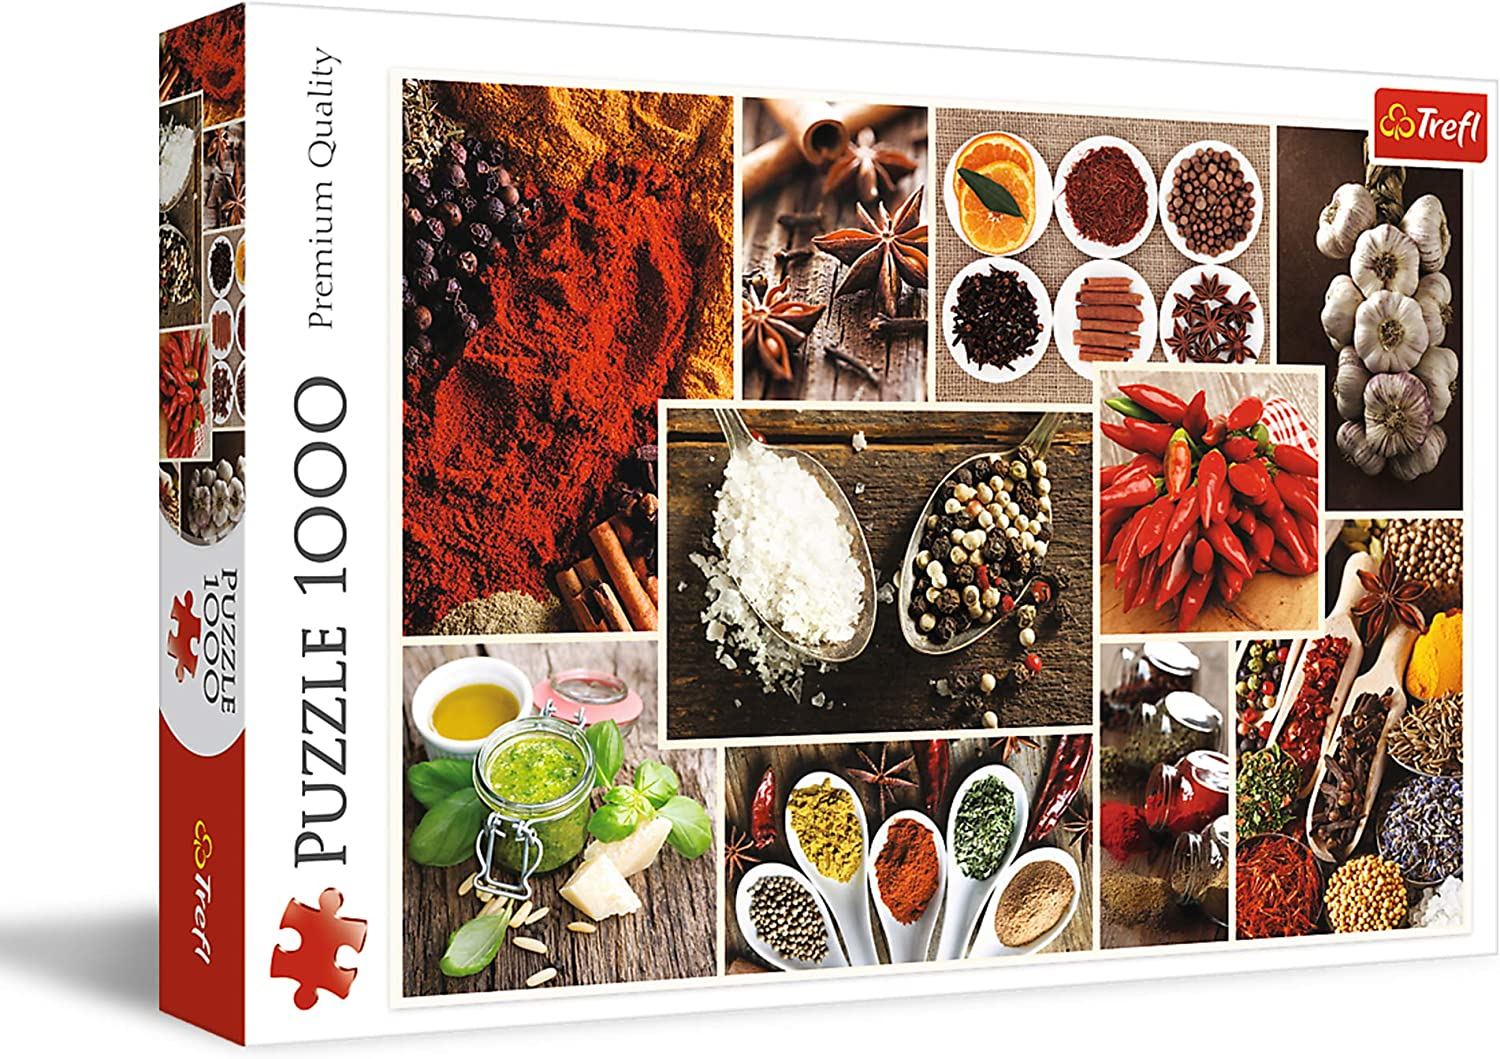 Trefl 1000 Piece Jigsaw Puzzle, Spices, Collage